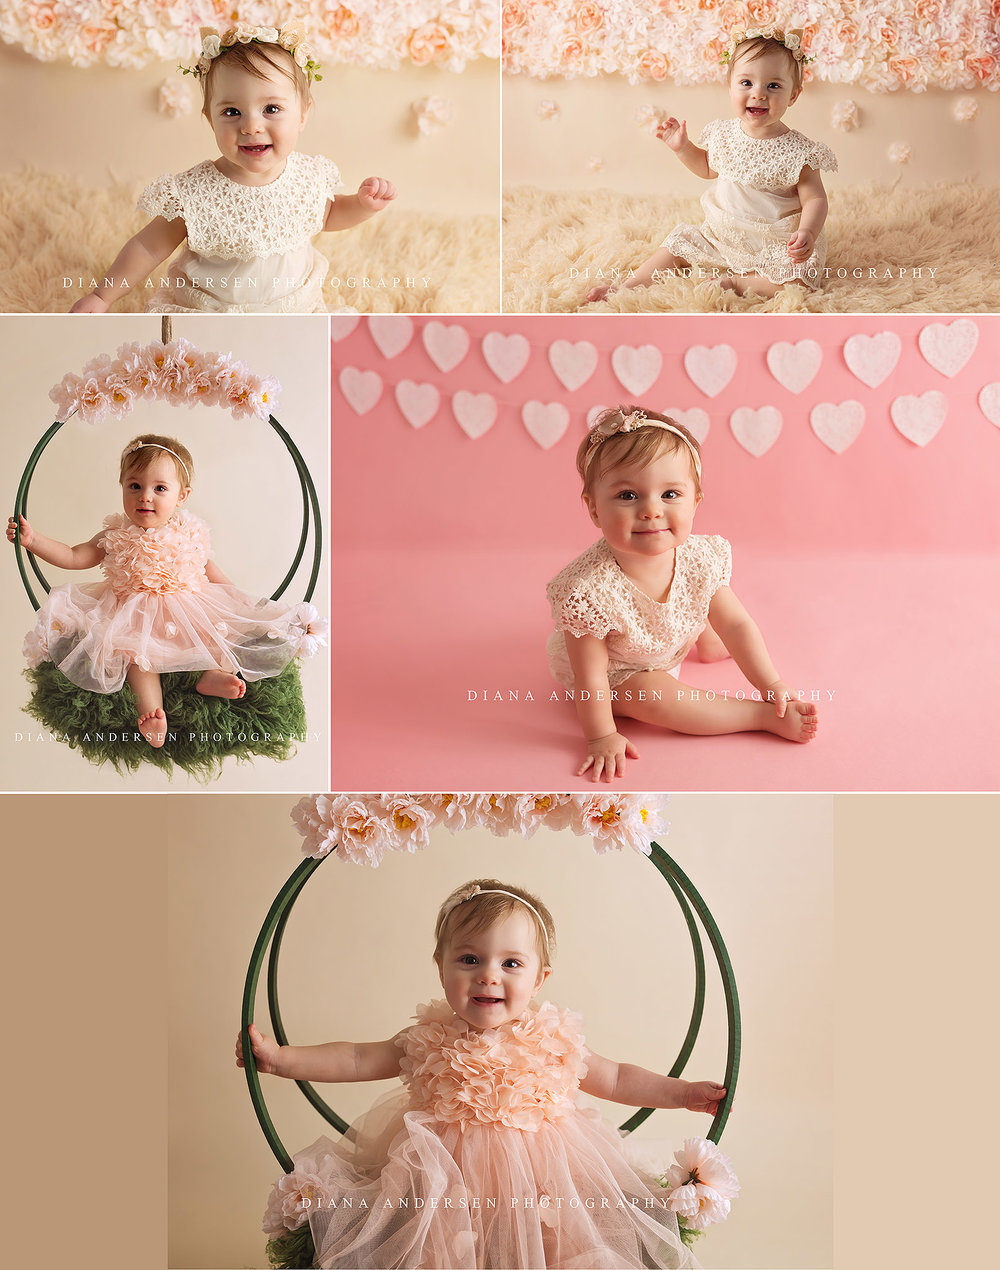 baby-girl-milestone-session-in-worland-wyoming-with-heart-doily-backdrop